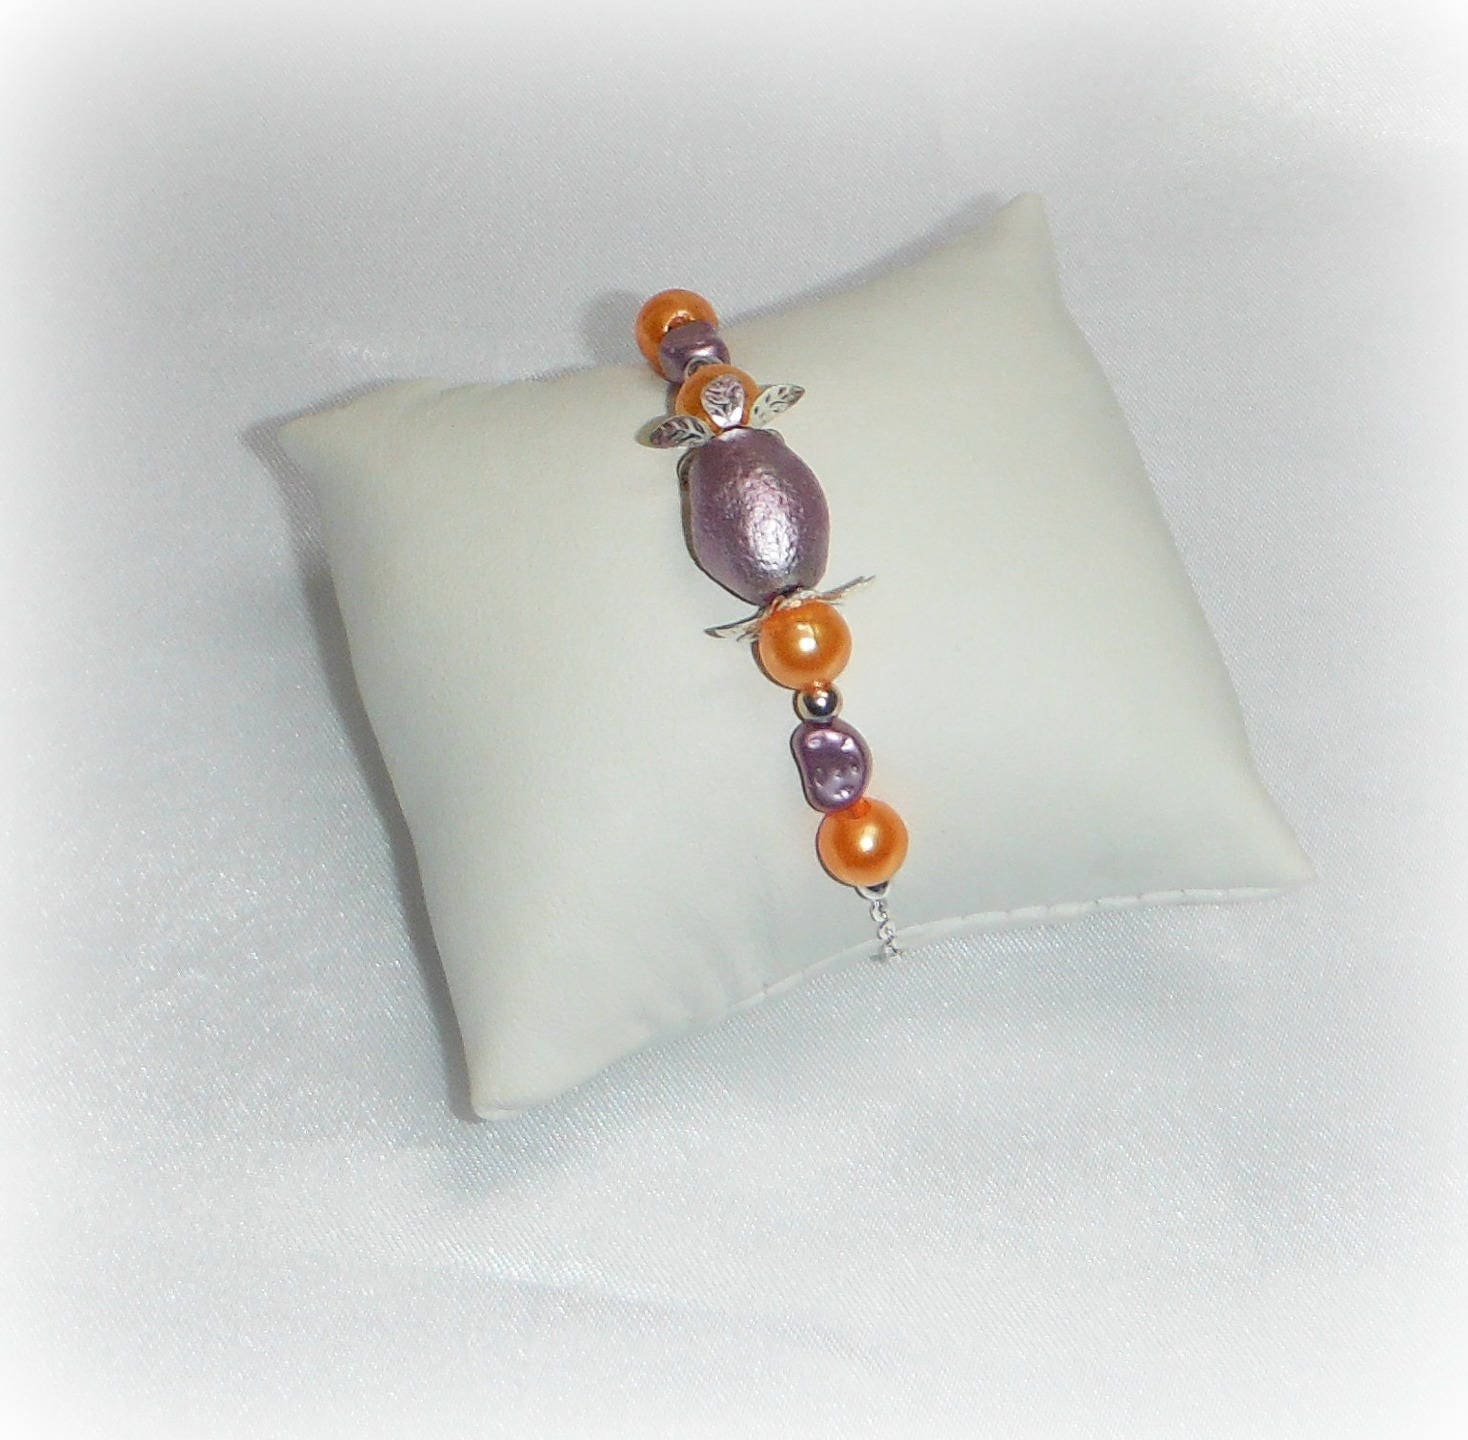 daisy bracelet tendance mauve et orange etsy. Black Bedroom Furniture Sets. Home Design Ideas